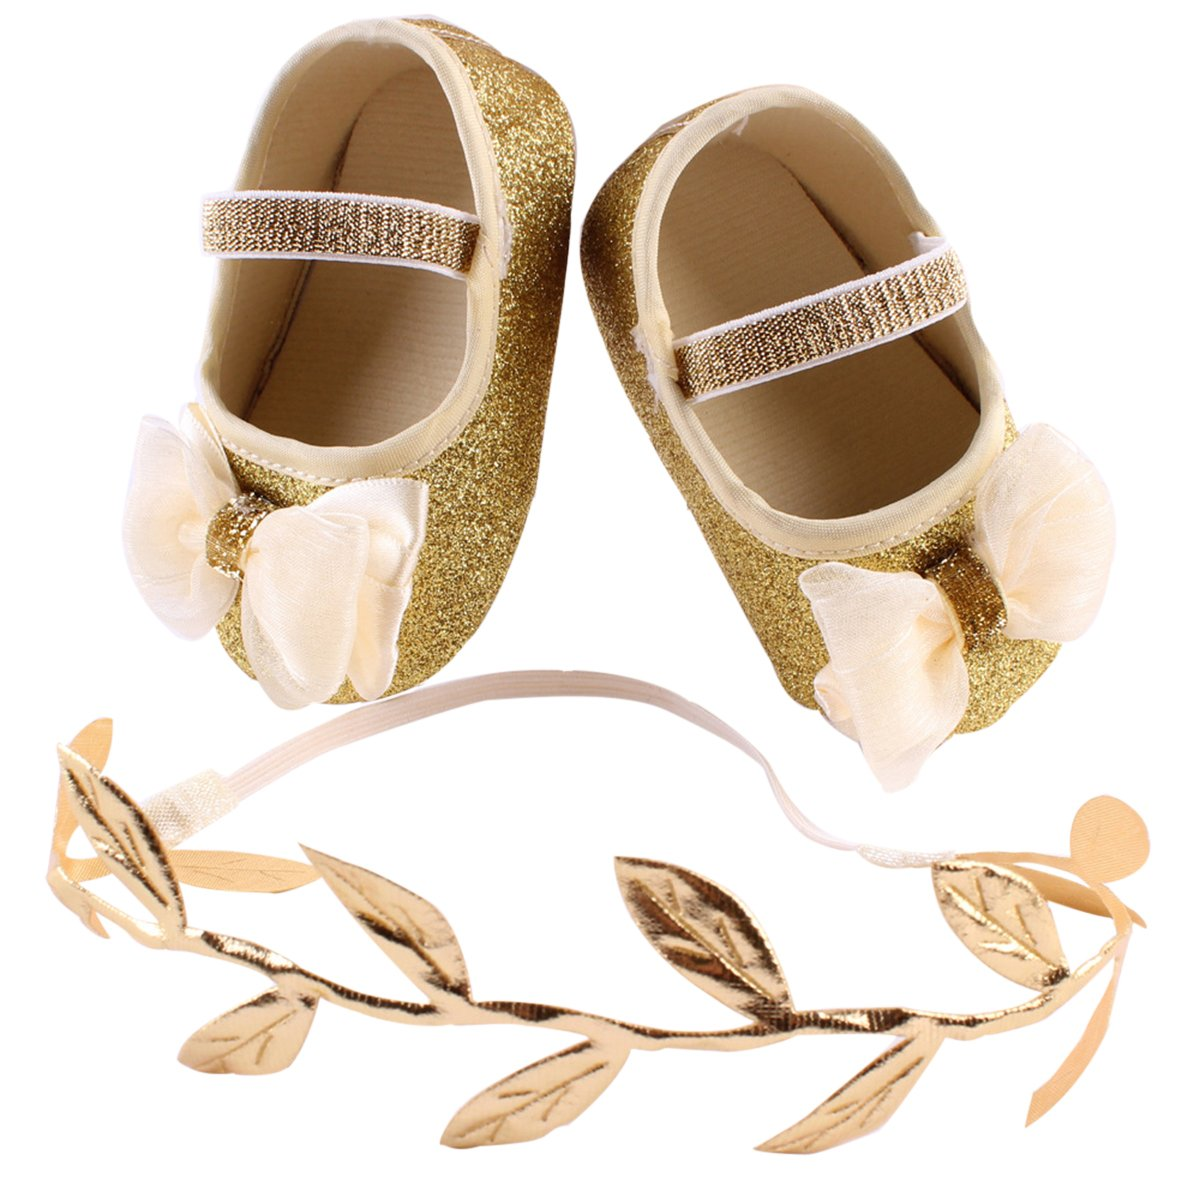 Baby Girls Bowknot Glitter Shoes with Leaves Shaped Headband Gift Set - 13CM (Gold) LUOEM